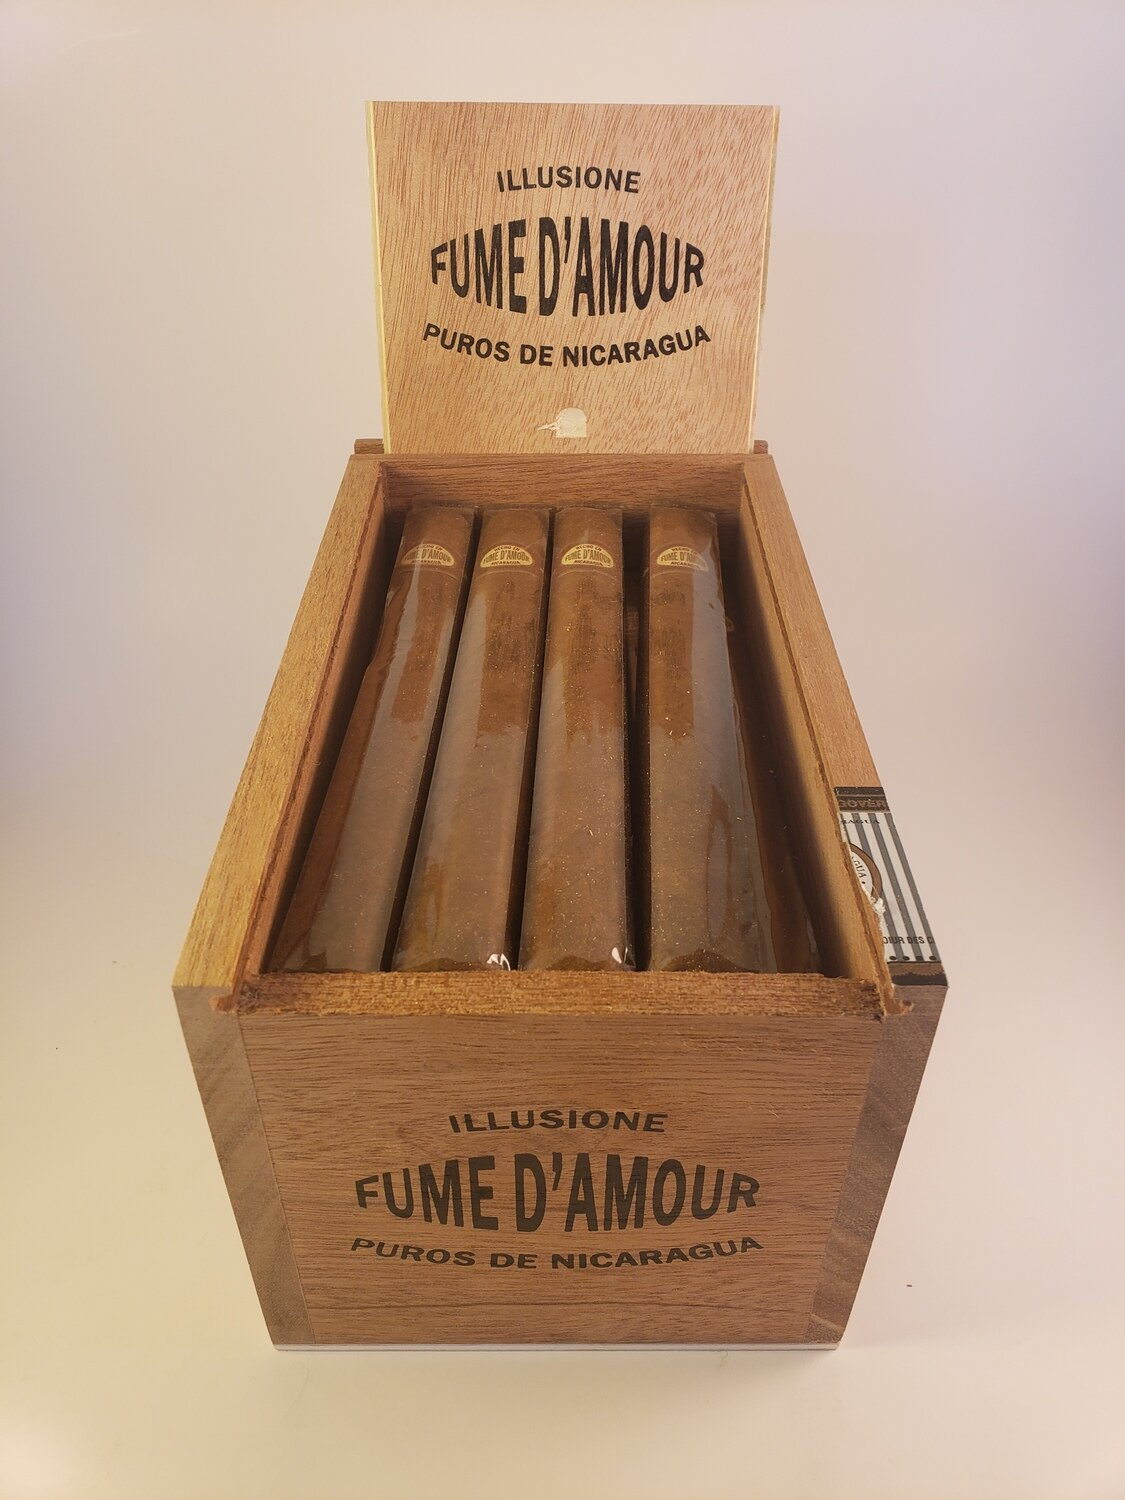 Illusione Fume D'Amour Clementes 6 1/2 x 48 Single Cigar